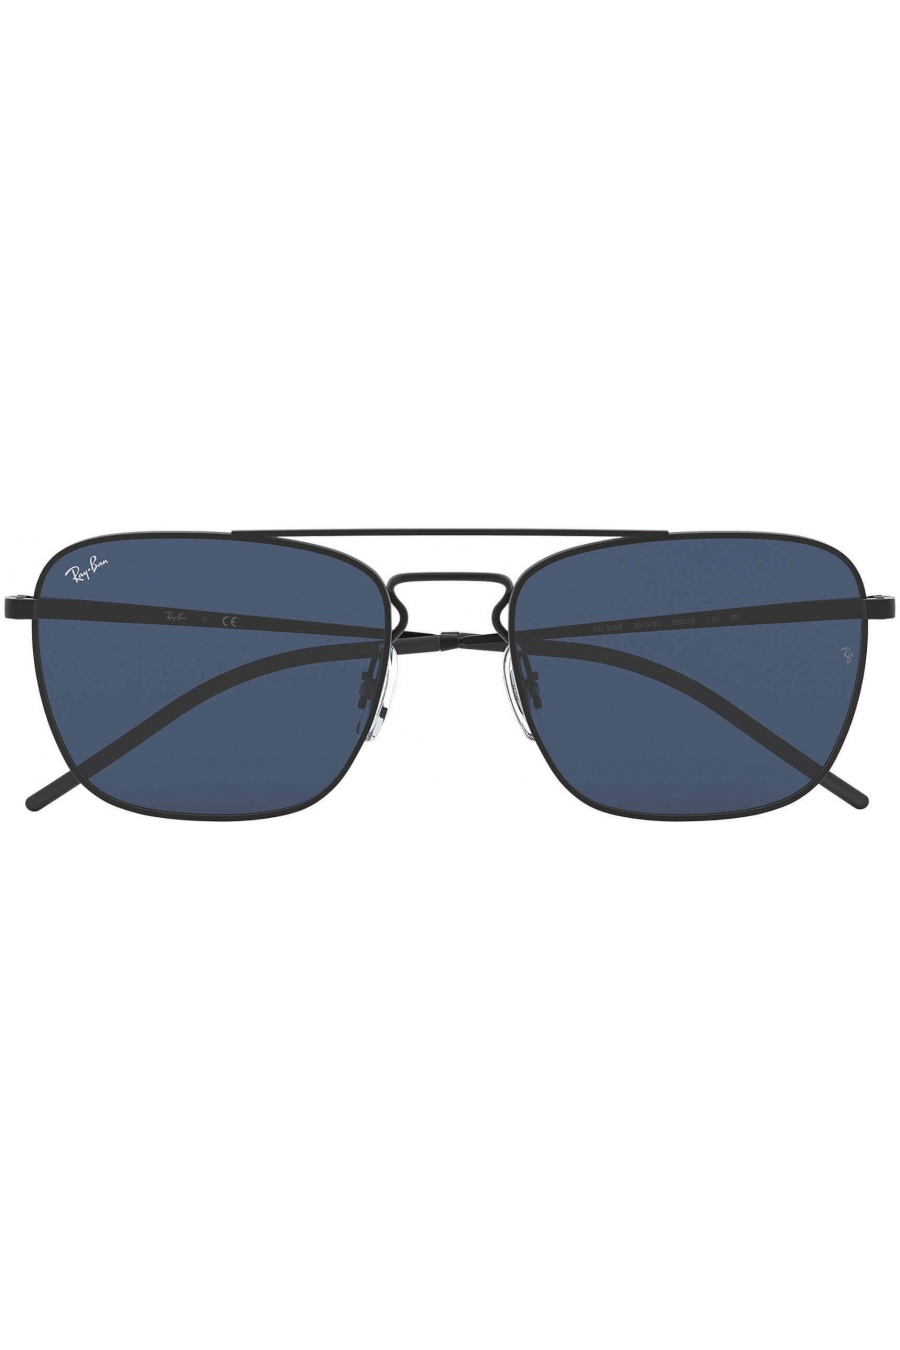 RAY-BAN RB3588 901480 FRONT